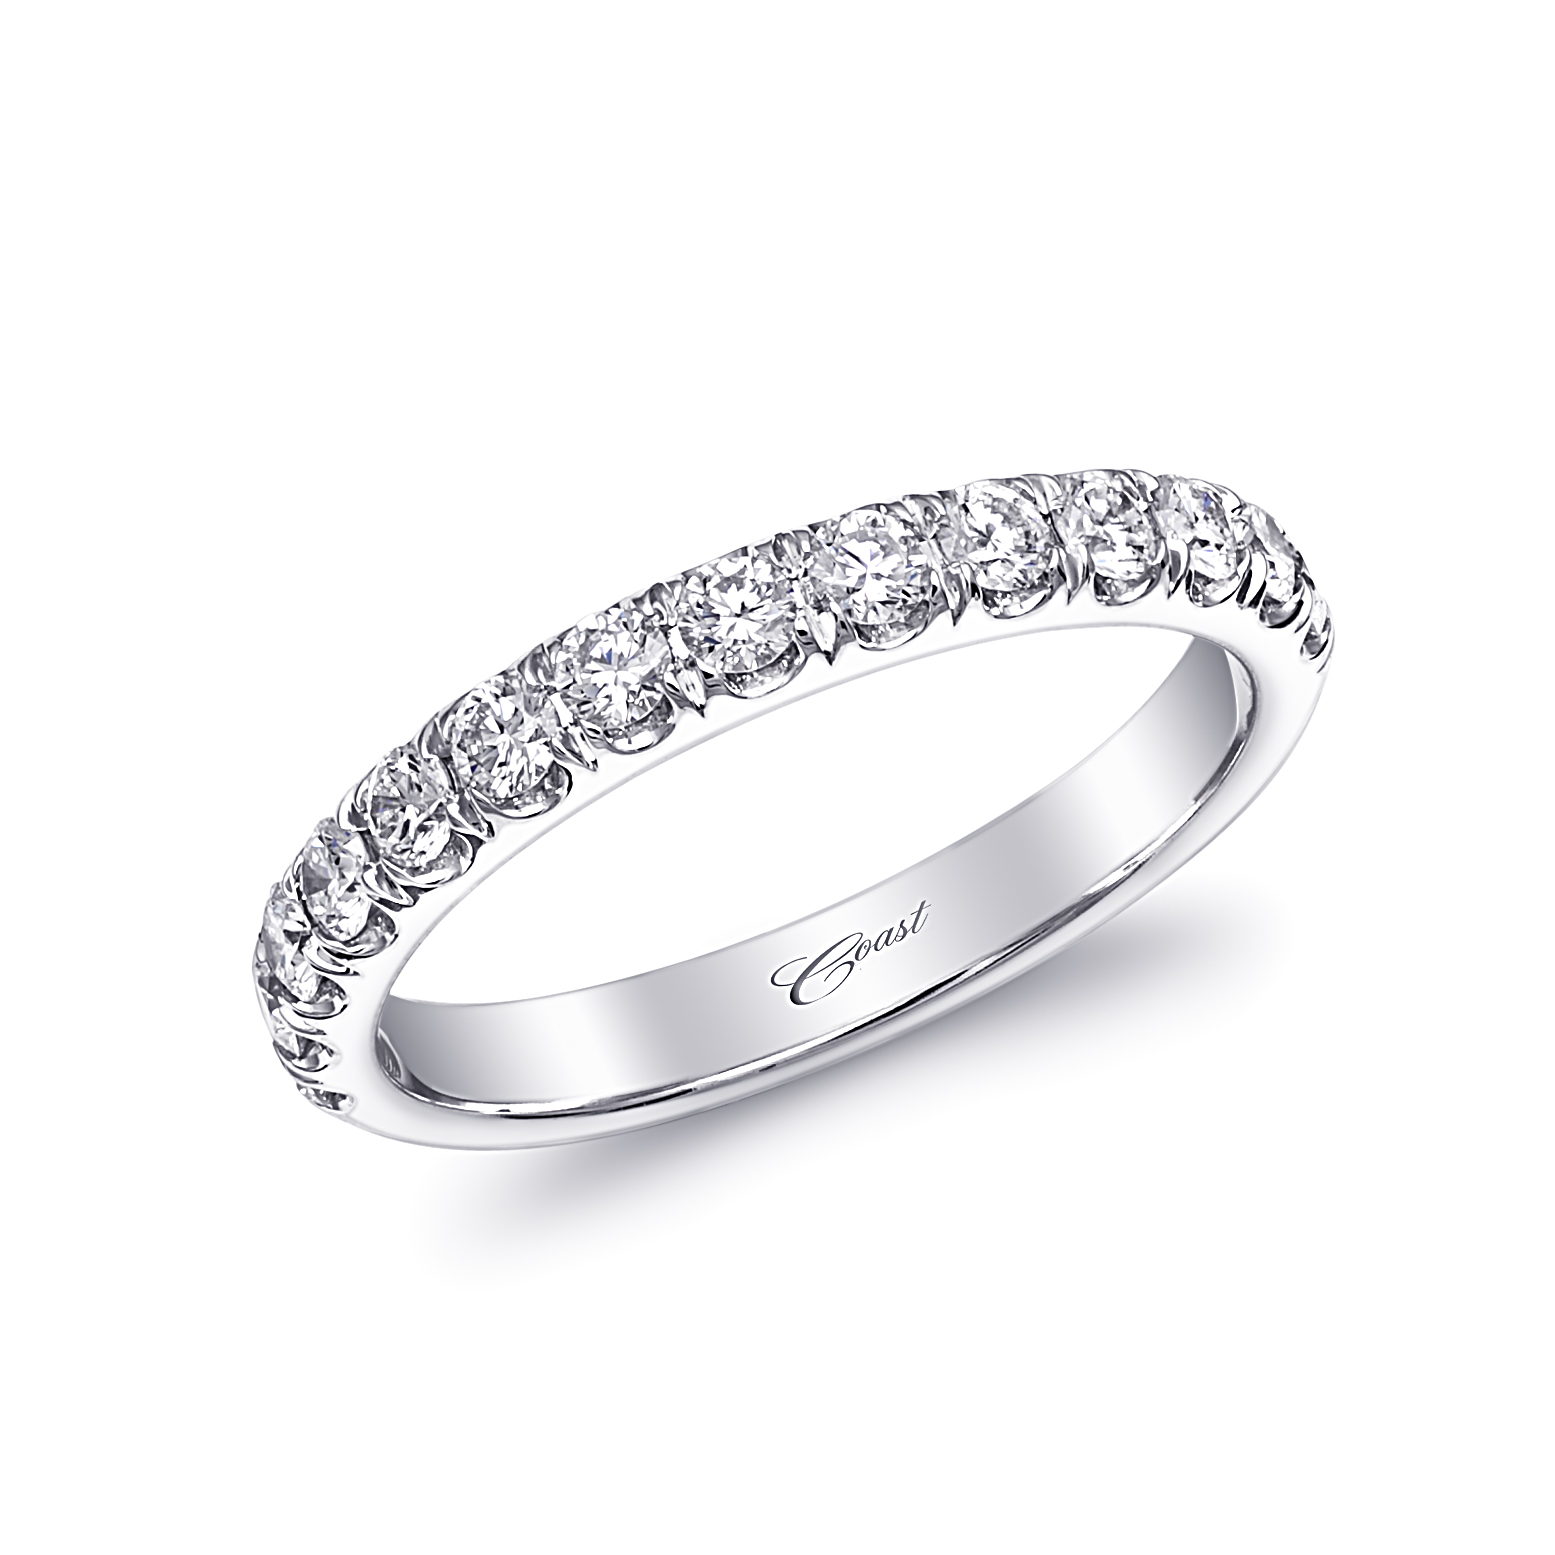 bands judith with kaplan diamond lk gold wedding band diamonds arnell jewelers white twist lazare full cut products